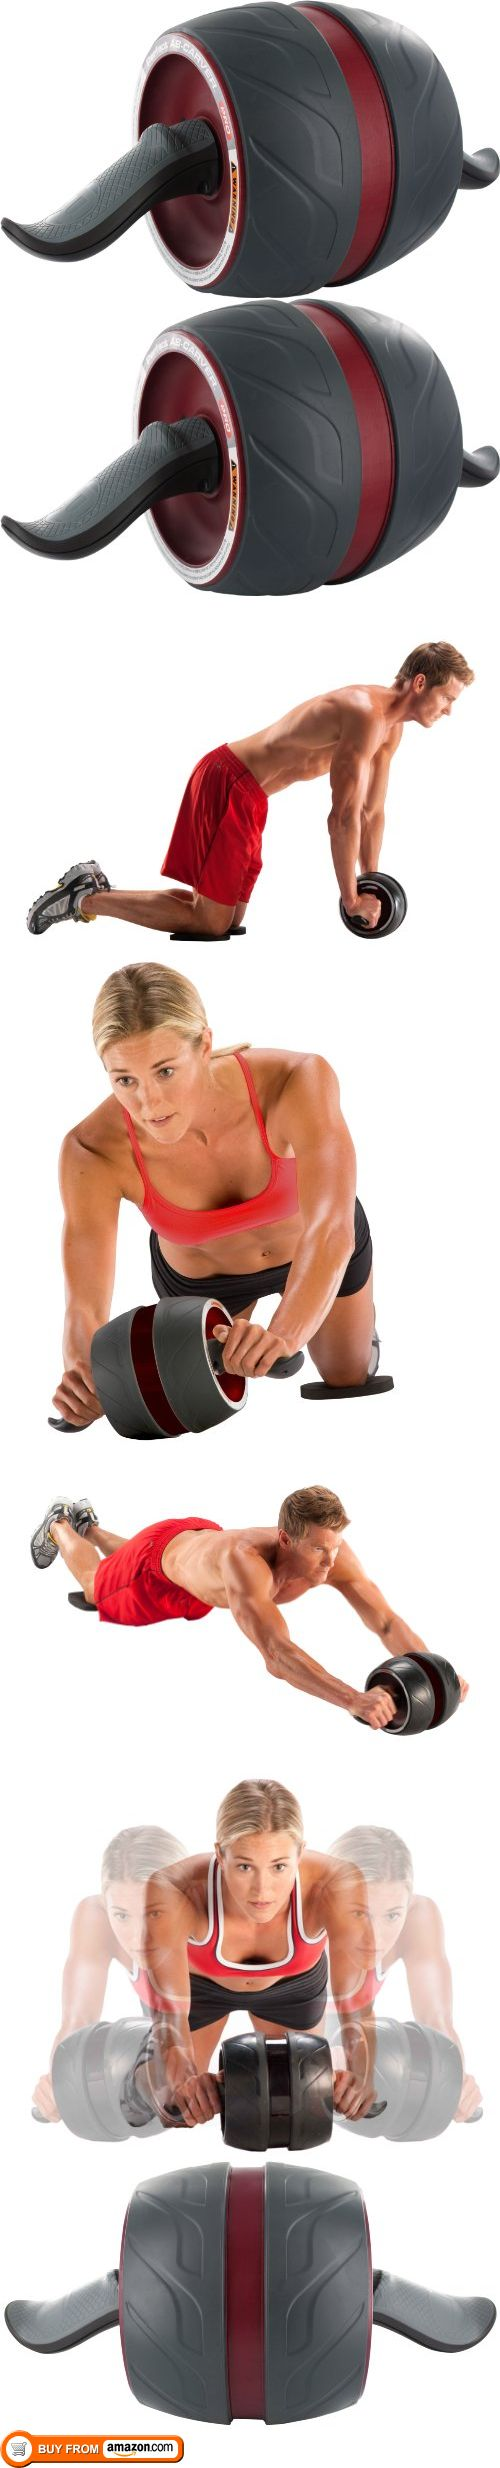 Perfect Fitness Ab Carver Pro, The Perfect Ab-Carver™ will carve your core and help you get ripped abs and sculpted arms. The kinetic engine uses a carbon steel spring to turbocharge your abdominal and arm workouts. It provides..., #Sporting Goods, #Core & Abdominal Trainers, http://24-7.fit